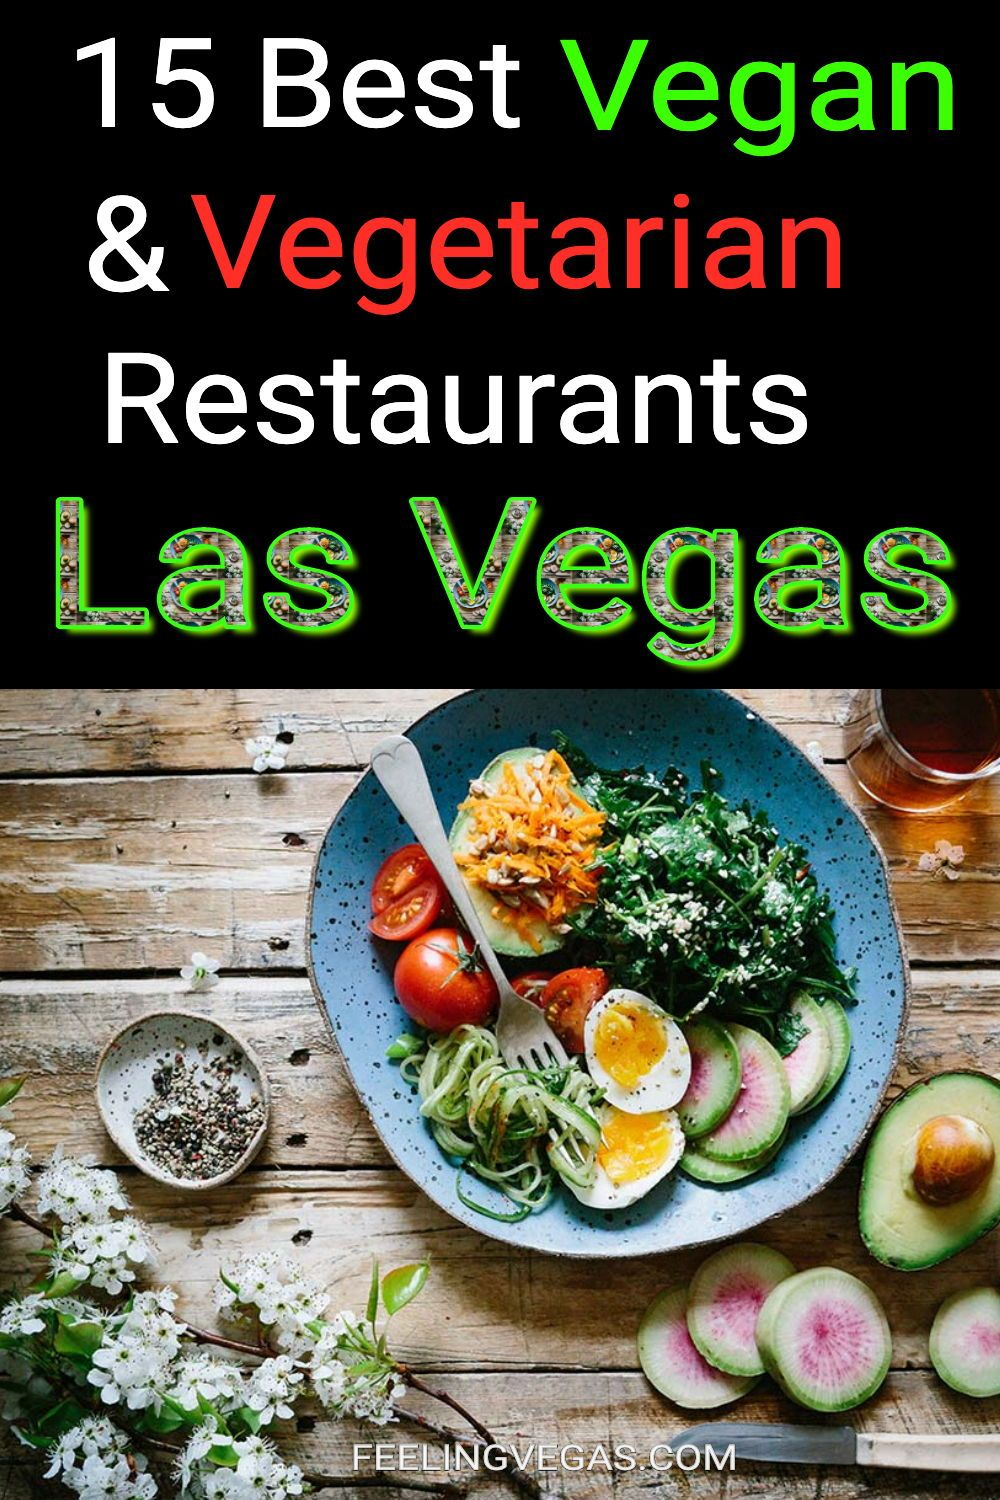 The 15 Best Vegetarian Vegan Restaurants In Las Vegas Feeling Vegas In 2020 Vegas Food Best Food In Vegas Las Vegas Food